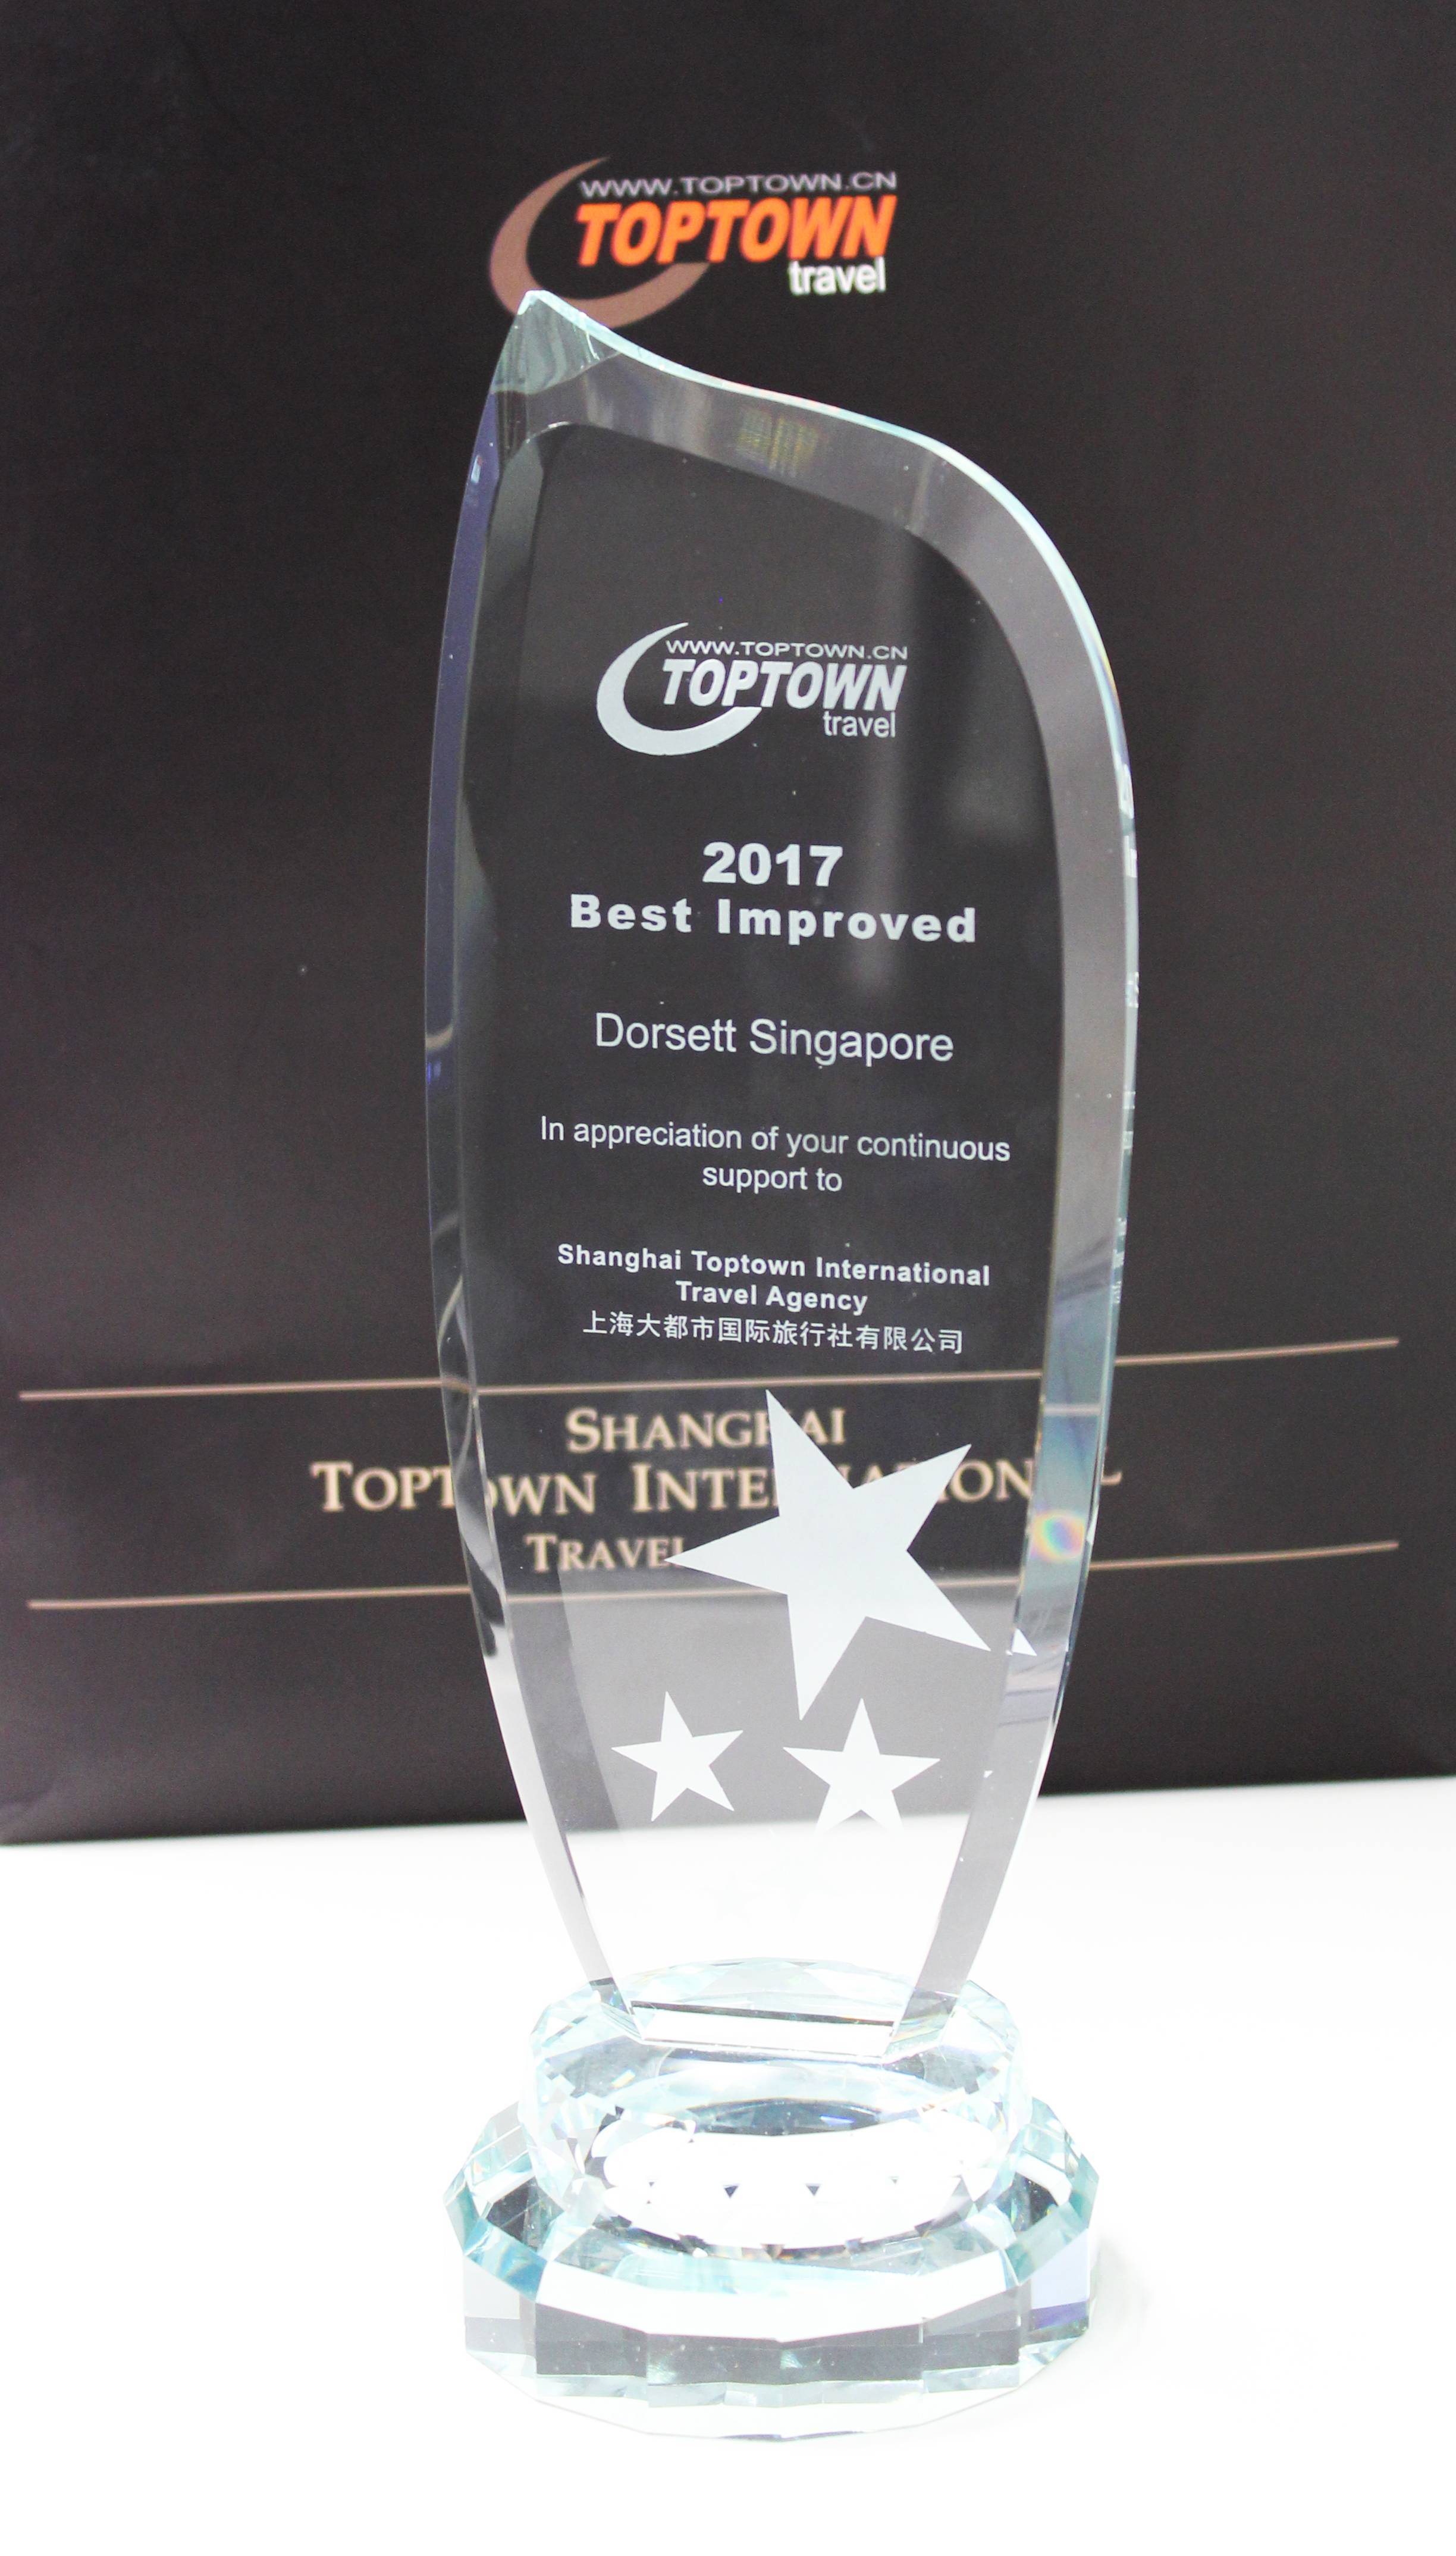 2017 Best Improved - Shanghai Toptown International Travel Agency